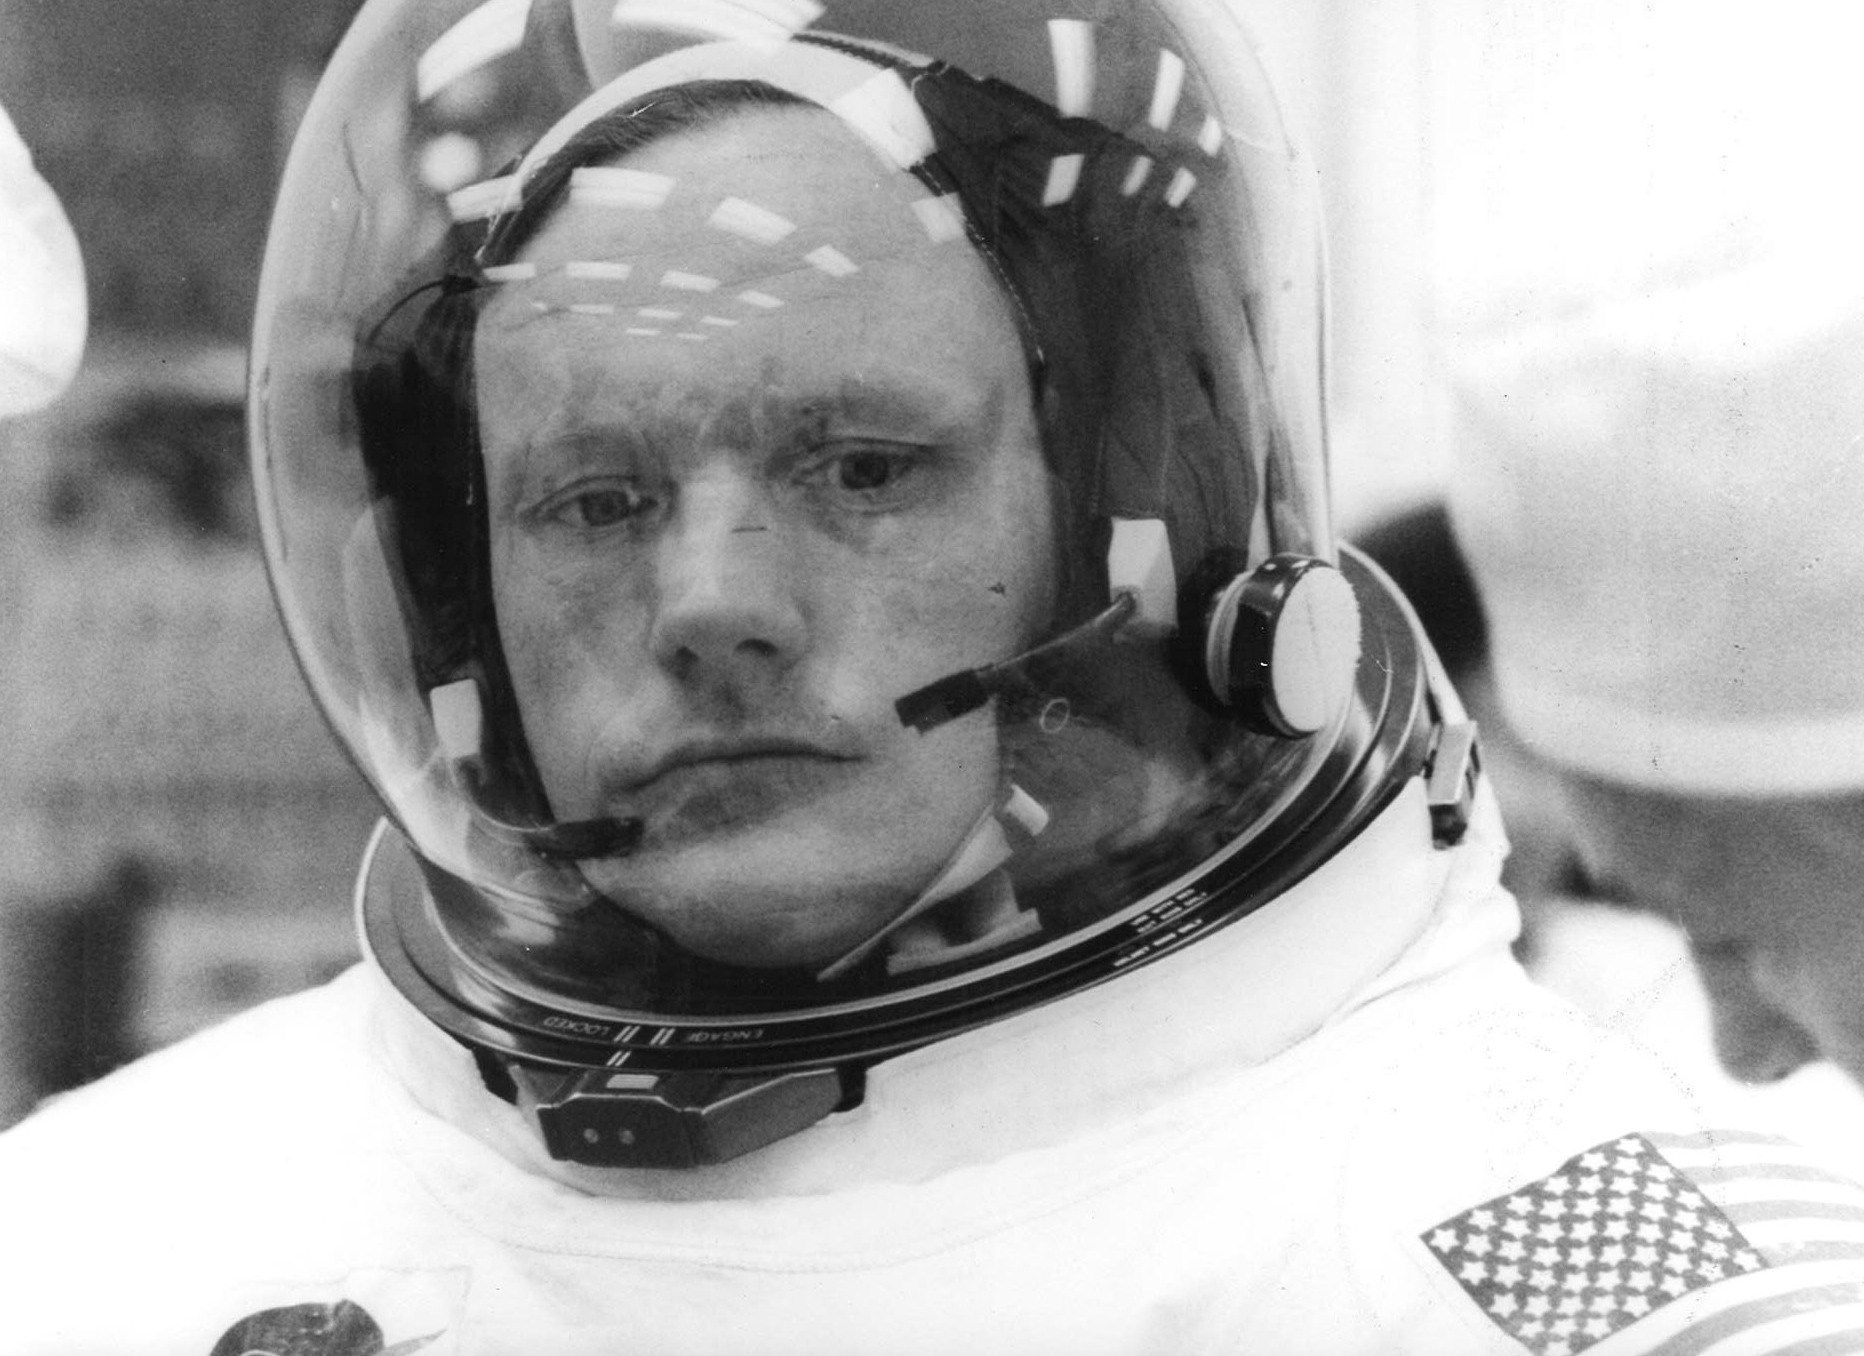 chairman neil armstrong - photo #34